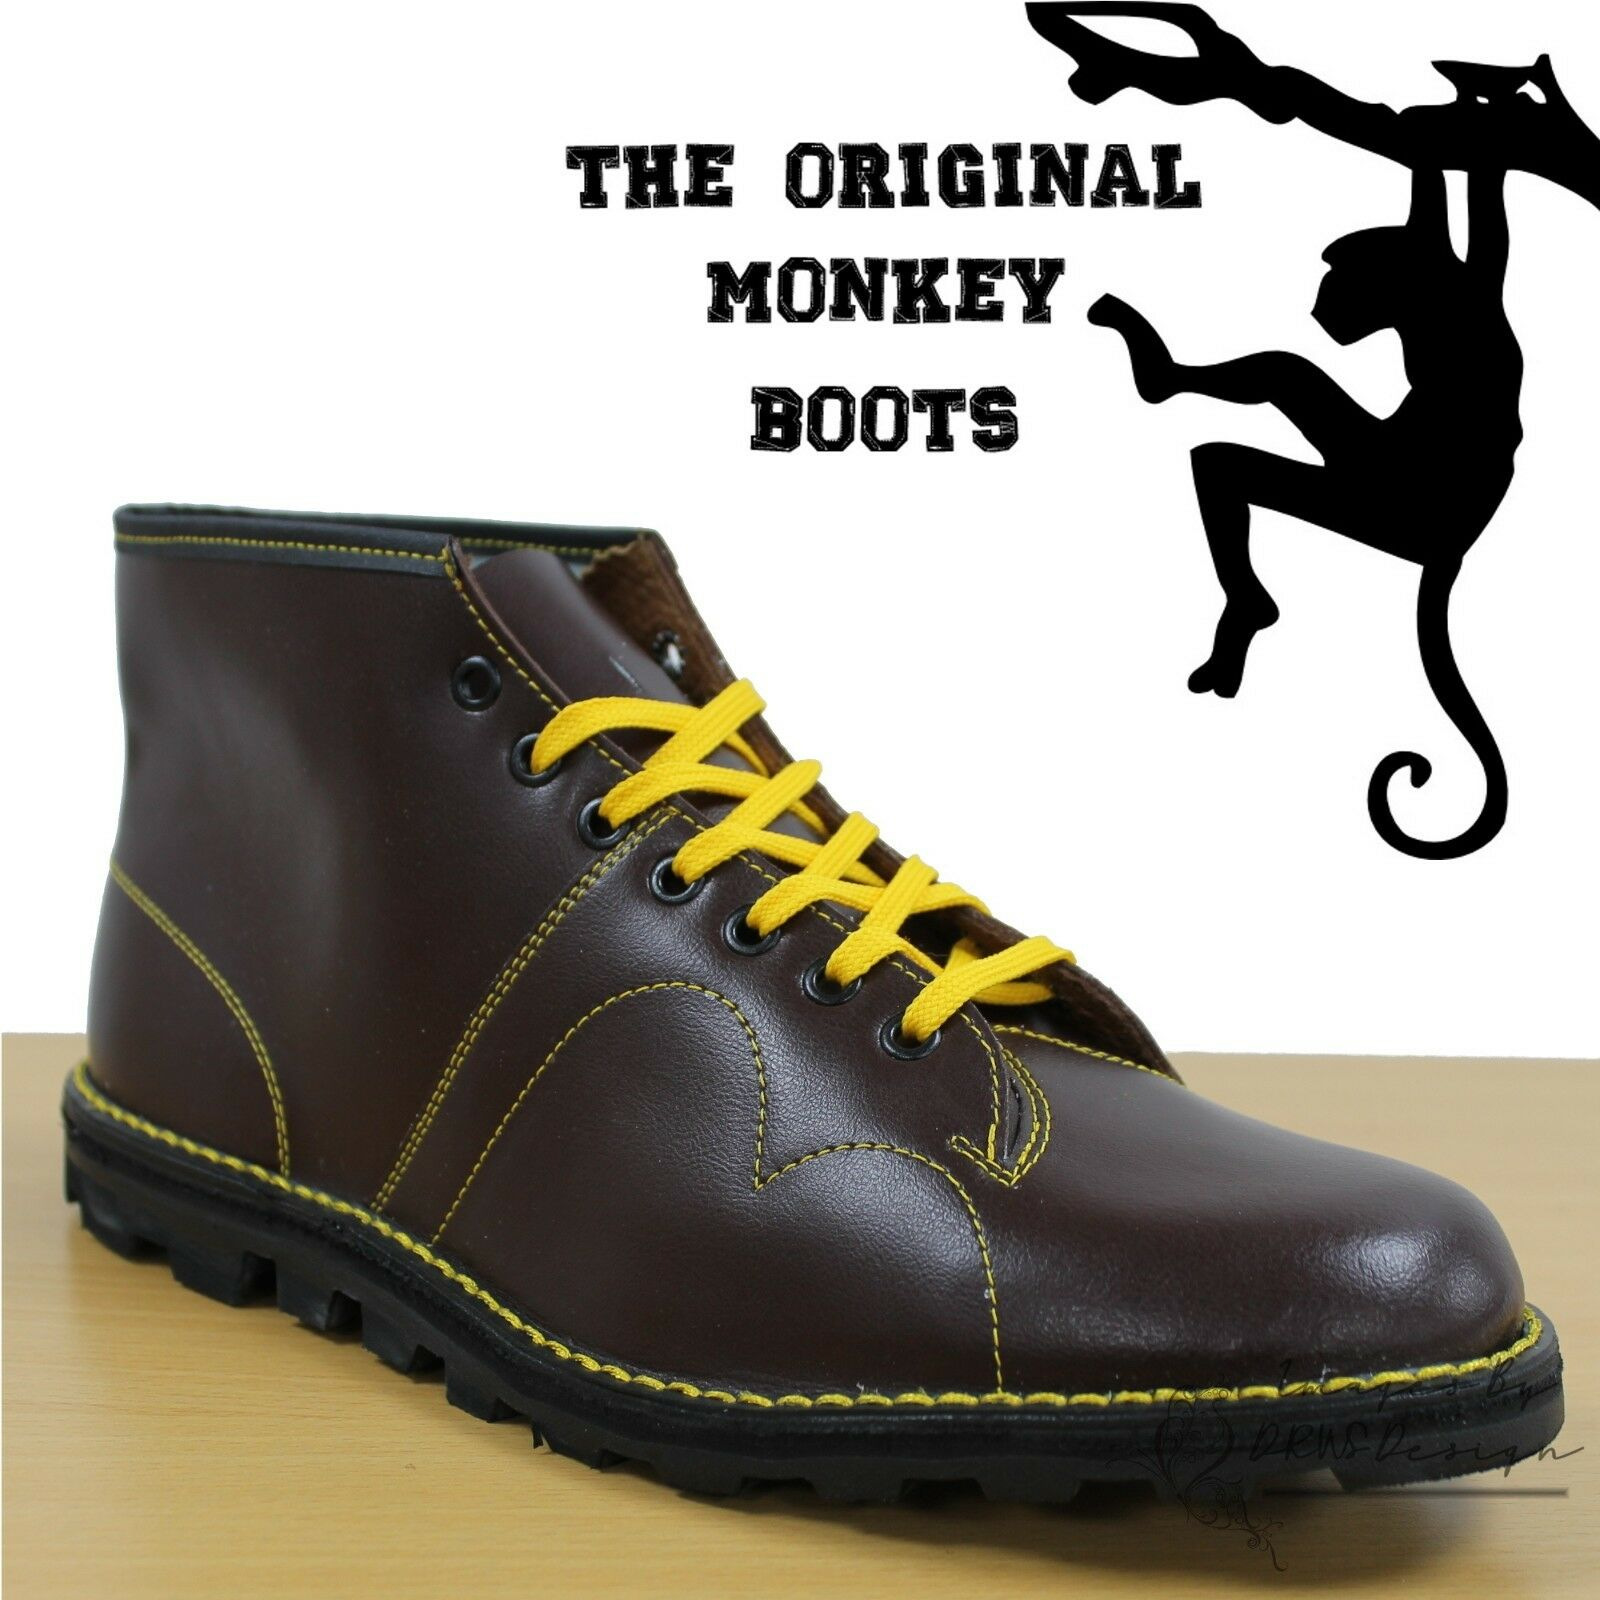 34f489b7c14 Details about Grafters The Original Monkey Boots Mens Womens & Kids Retro  60's Burgundy Shoes